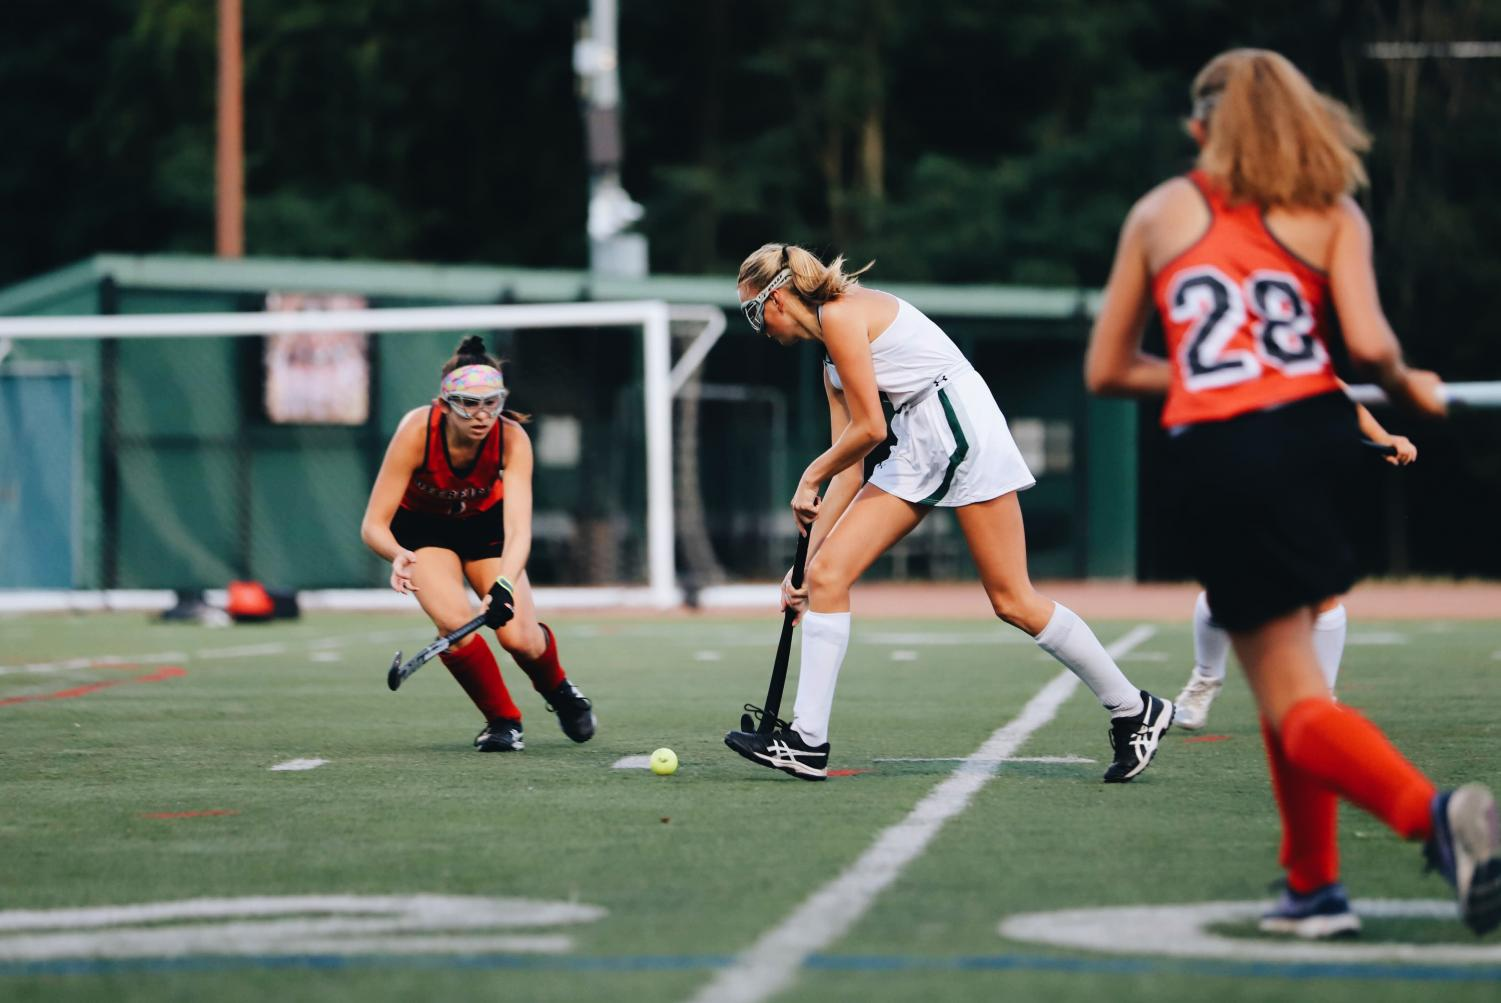 Evelyn Erickson (junior) makes a move to advance past a Deerfield defender.